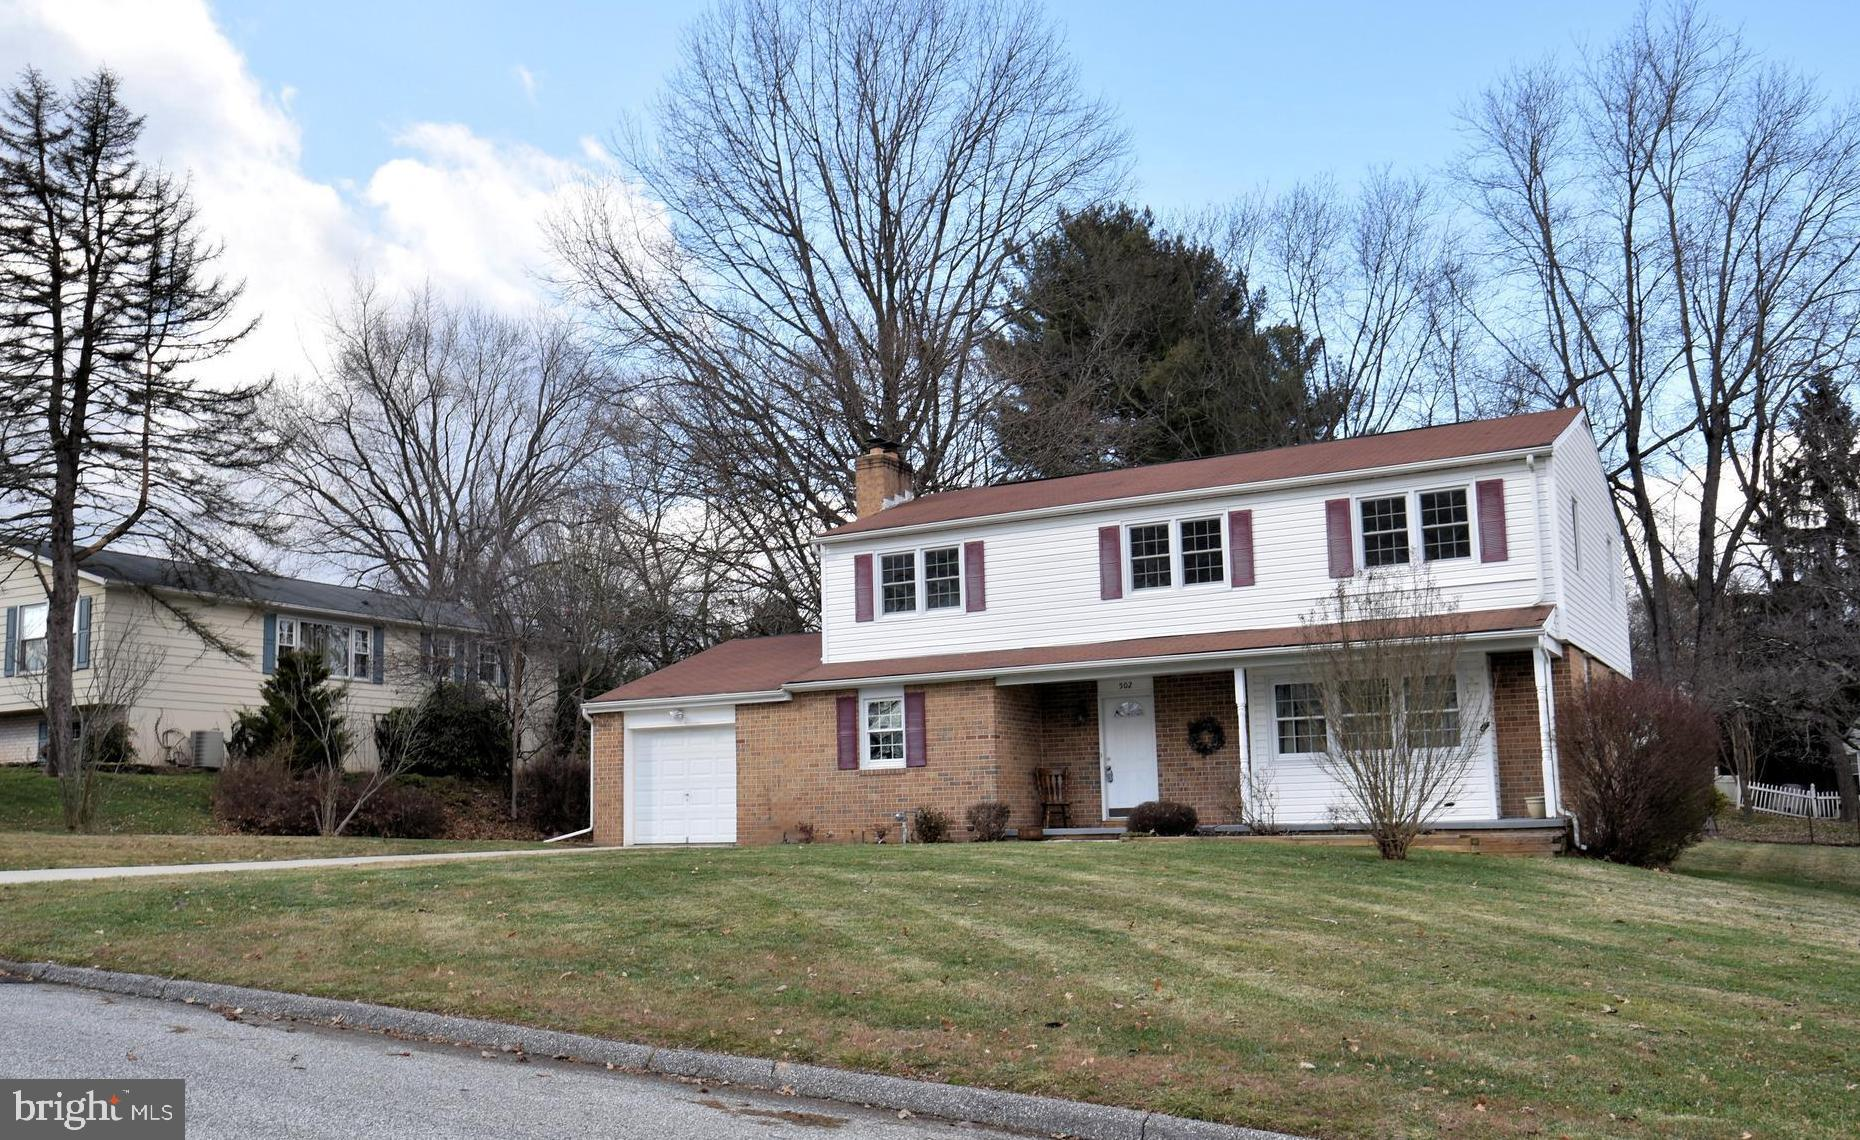 Talk about Curb Appeal and Location! Right in Bel Air just Minutes to Main Street, Ma and Pa Trail,